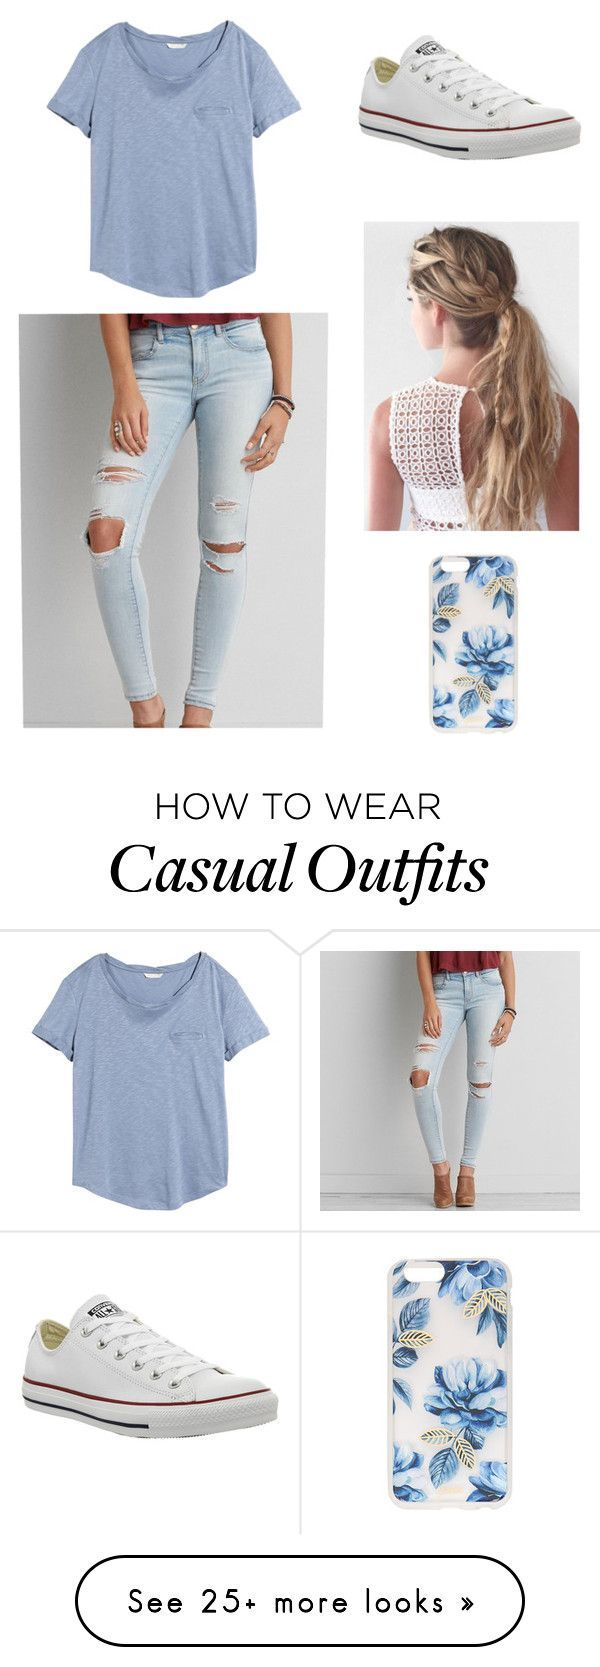 featuring H&M, Converse, American Eagle Outfitters and Sonix